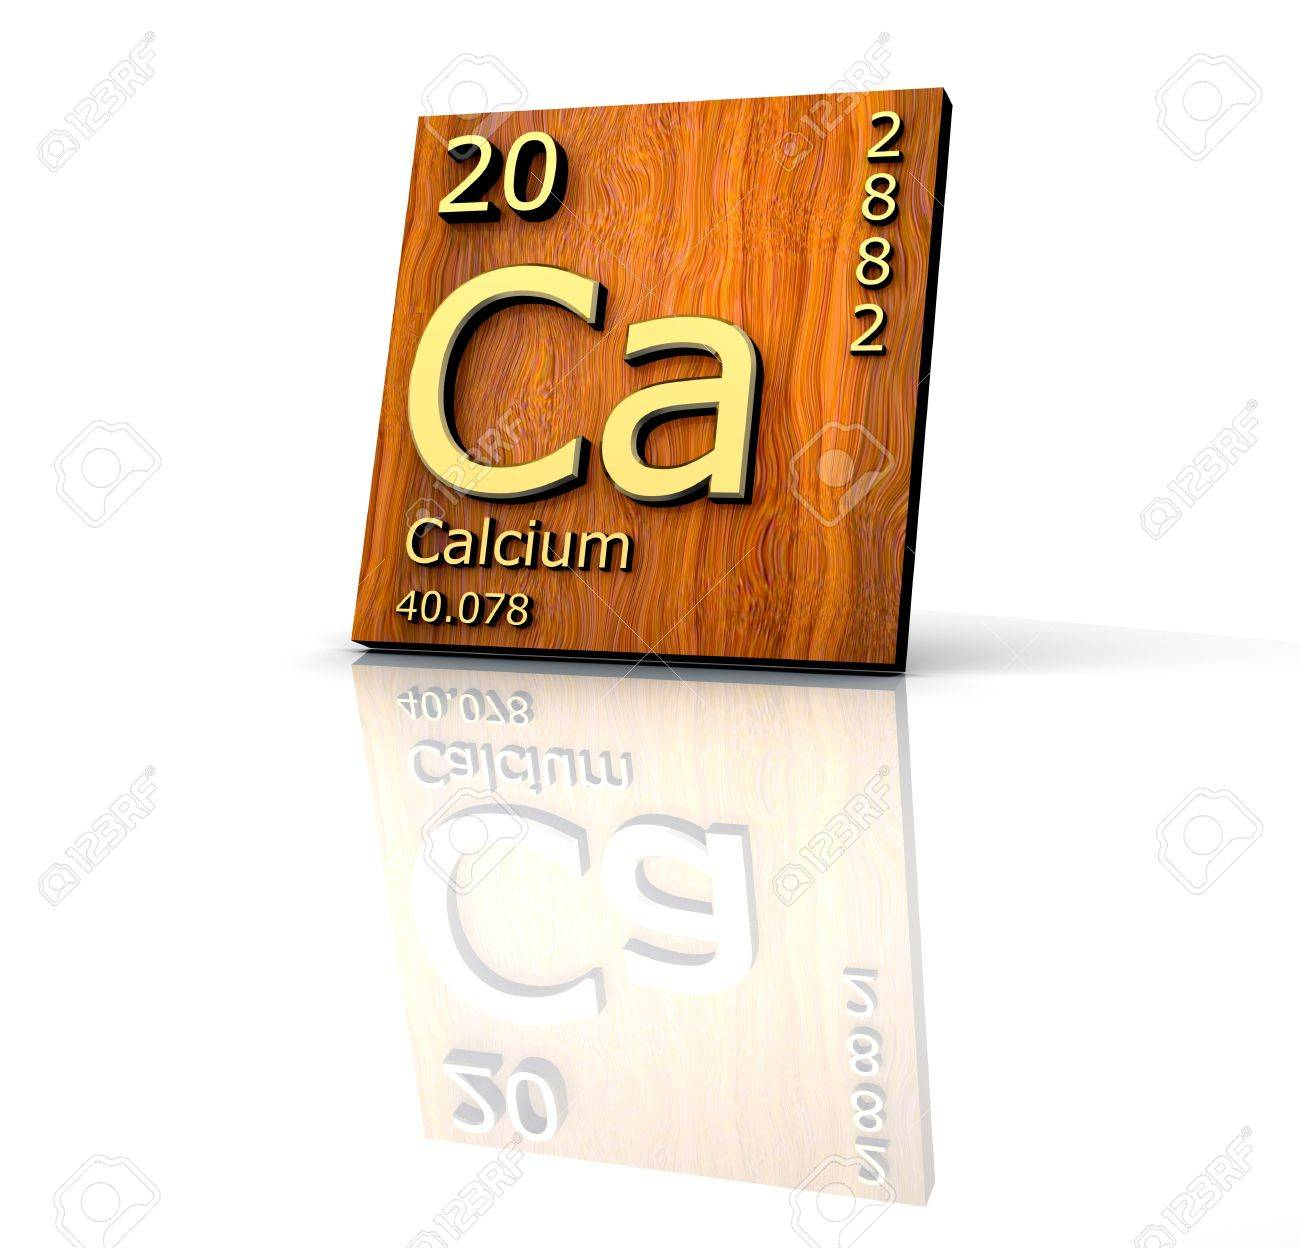 Calcium form periodic table of elements wood board stock photo calcium form periodic table of elements wood board stock photo 6973562 gamestrikefo Images